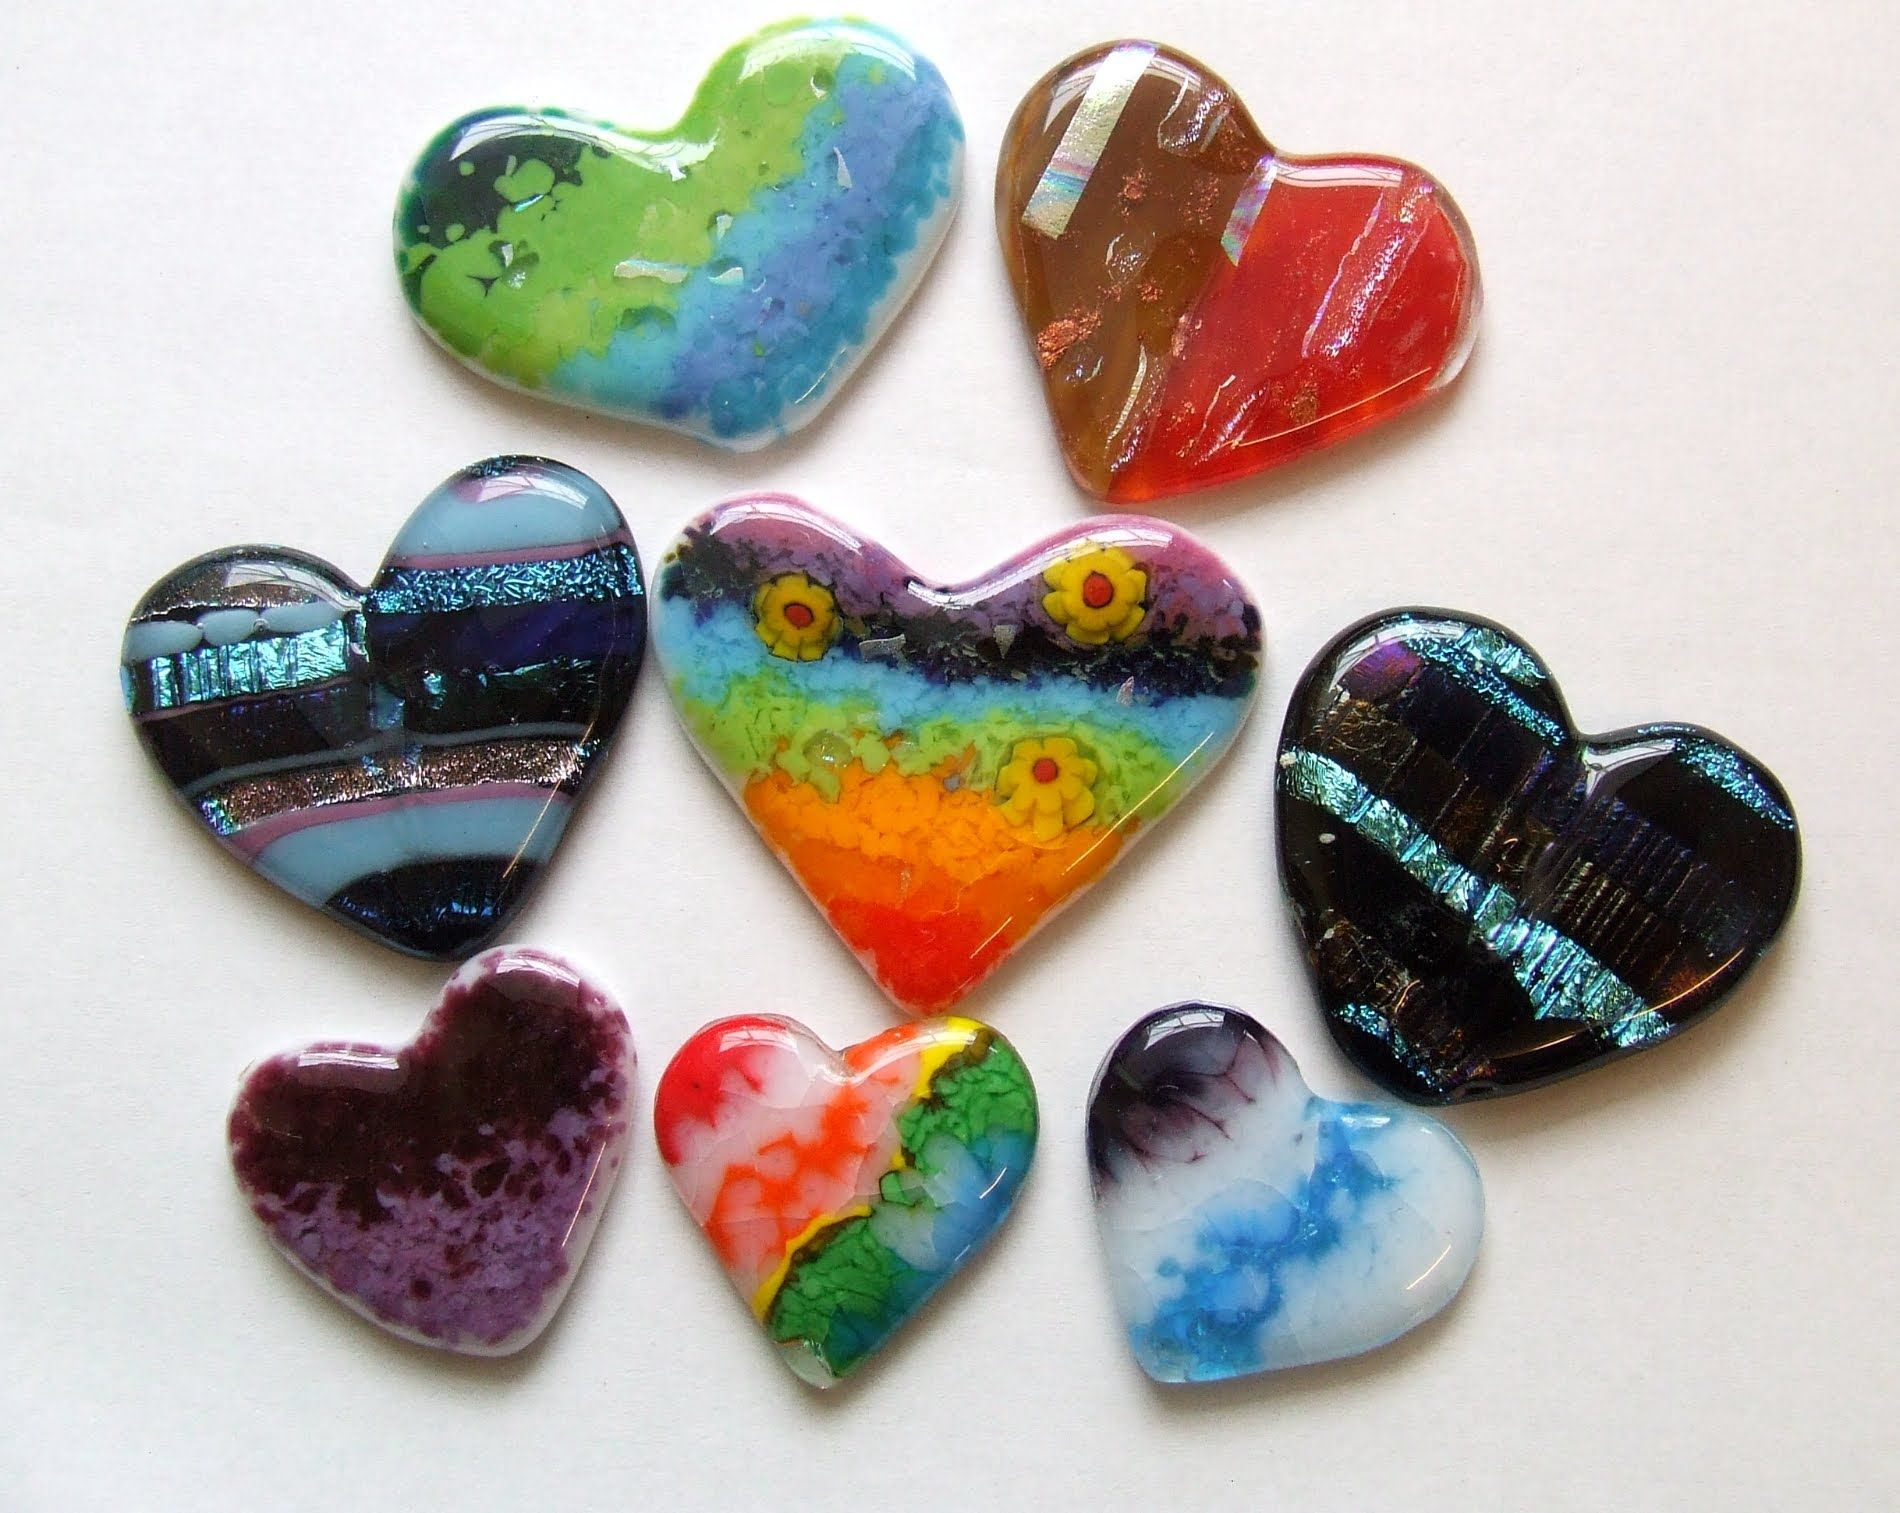 How to make beautiful fused glass hearts the easy way a glass how to make beautiful fused glass hearts the easy way a glass tutorial for beginners and more advanced fusers using bullseye glass spectrum glass thecheapjerseys Gallery